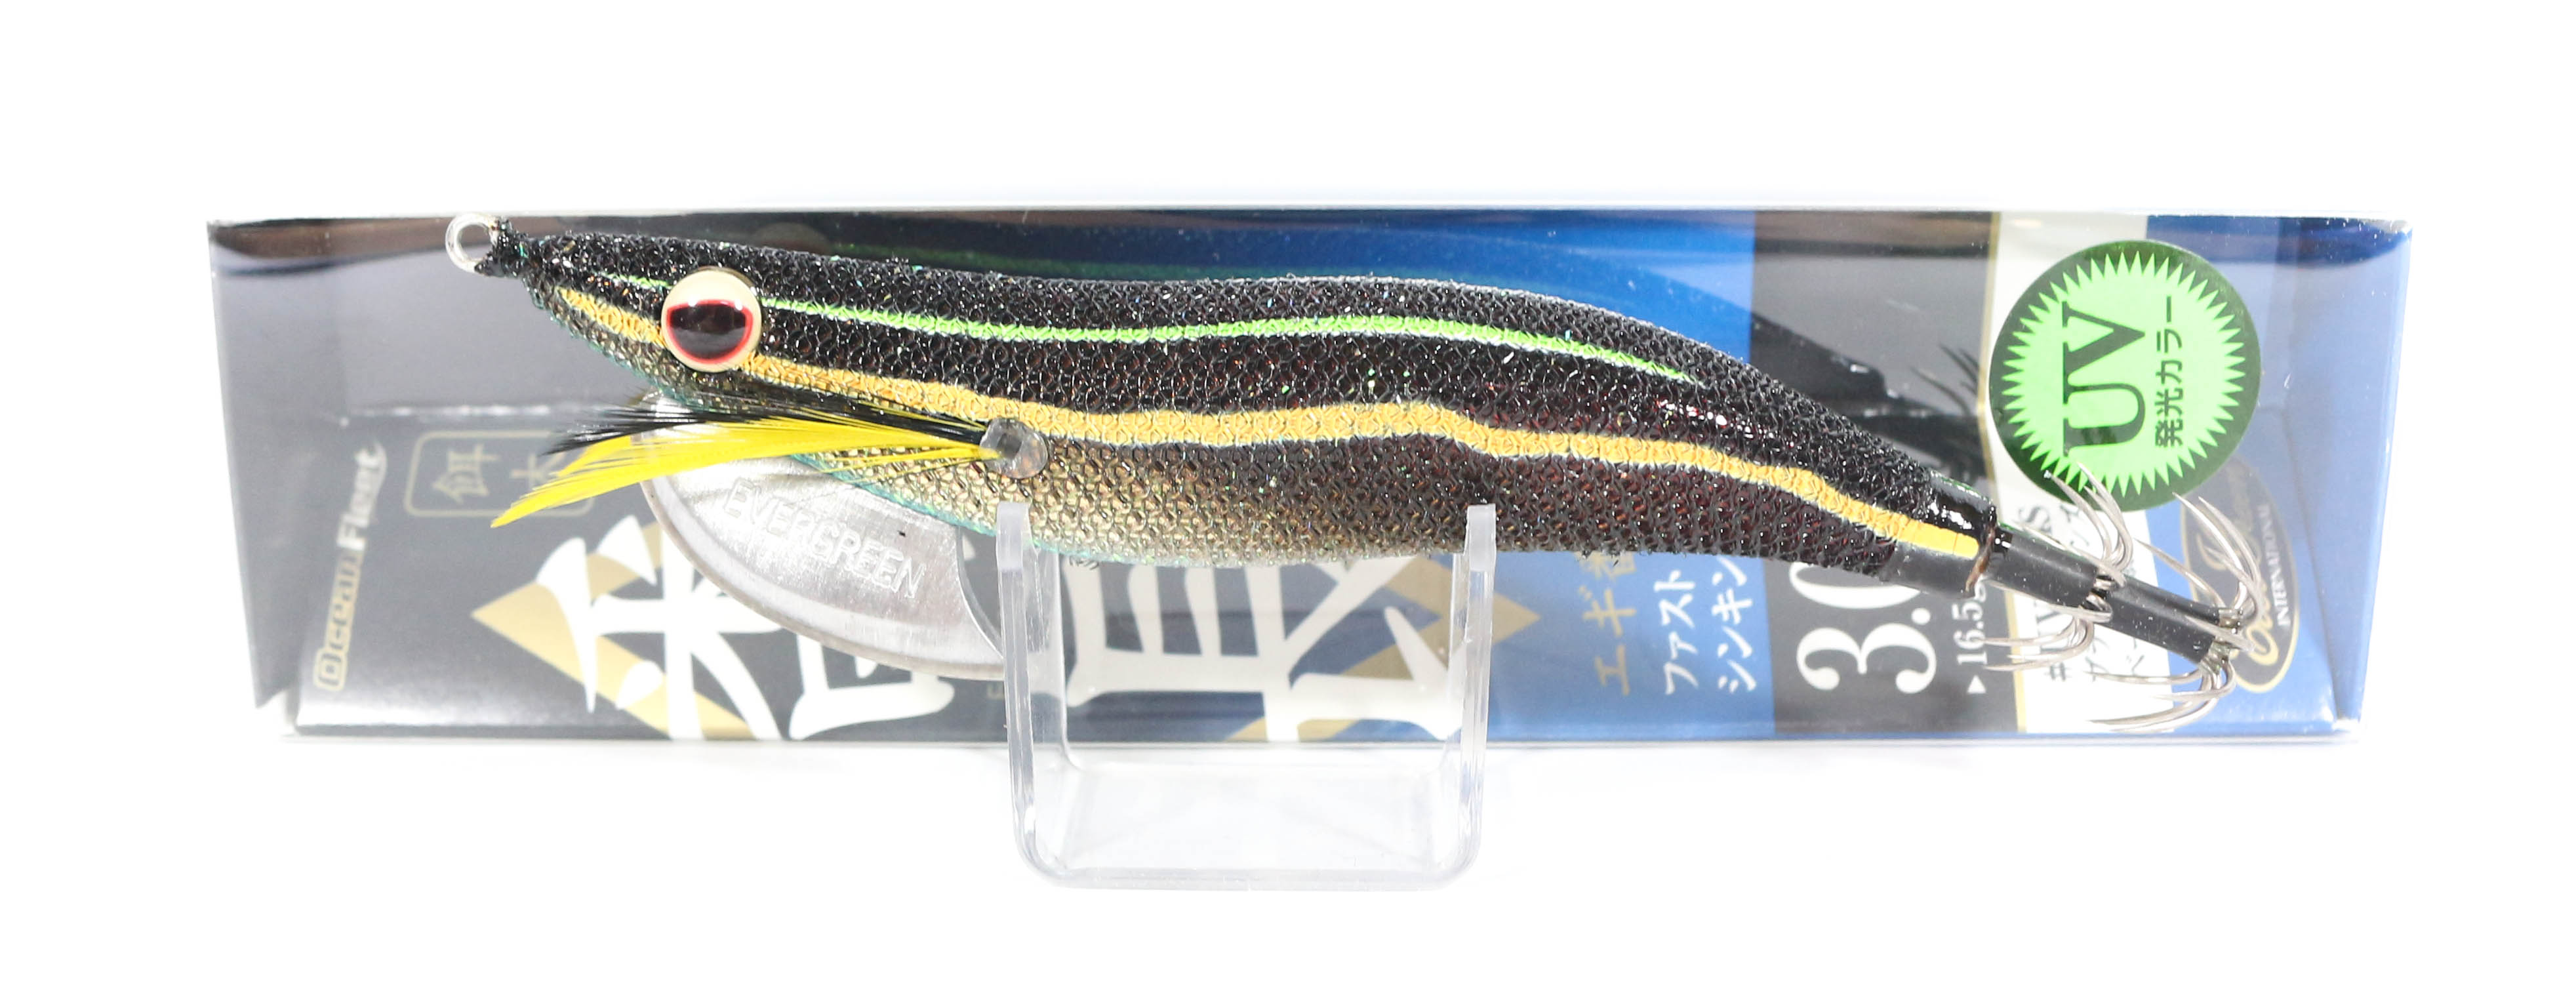 Evergreen Ocean Fleet Custom Squid Jig Lure 3.0D UV0604S (0501)